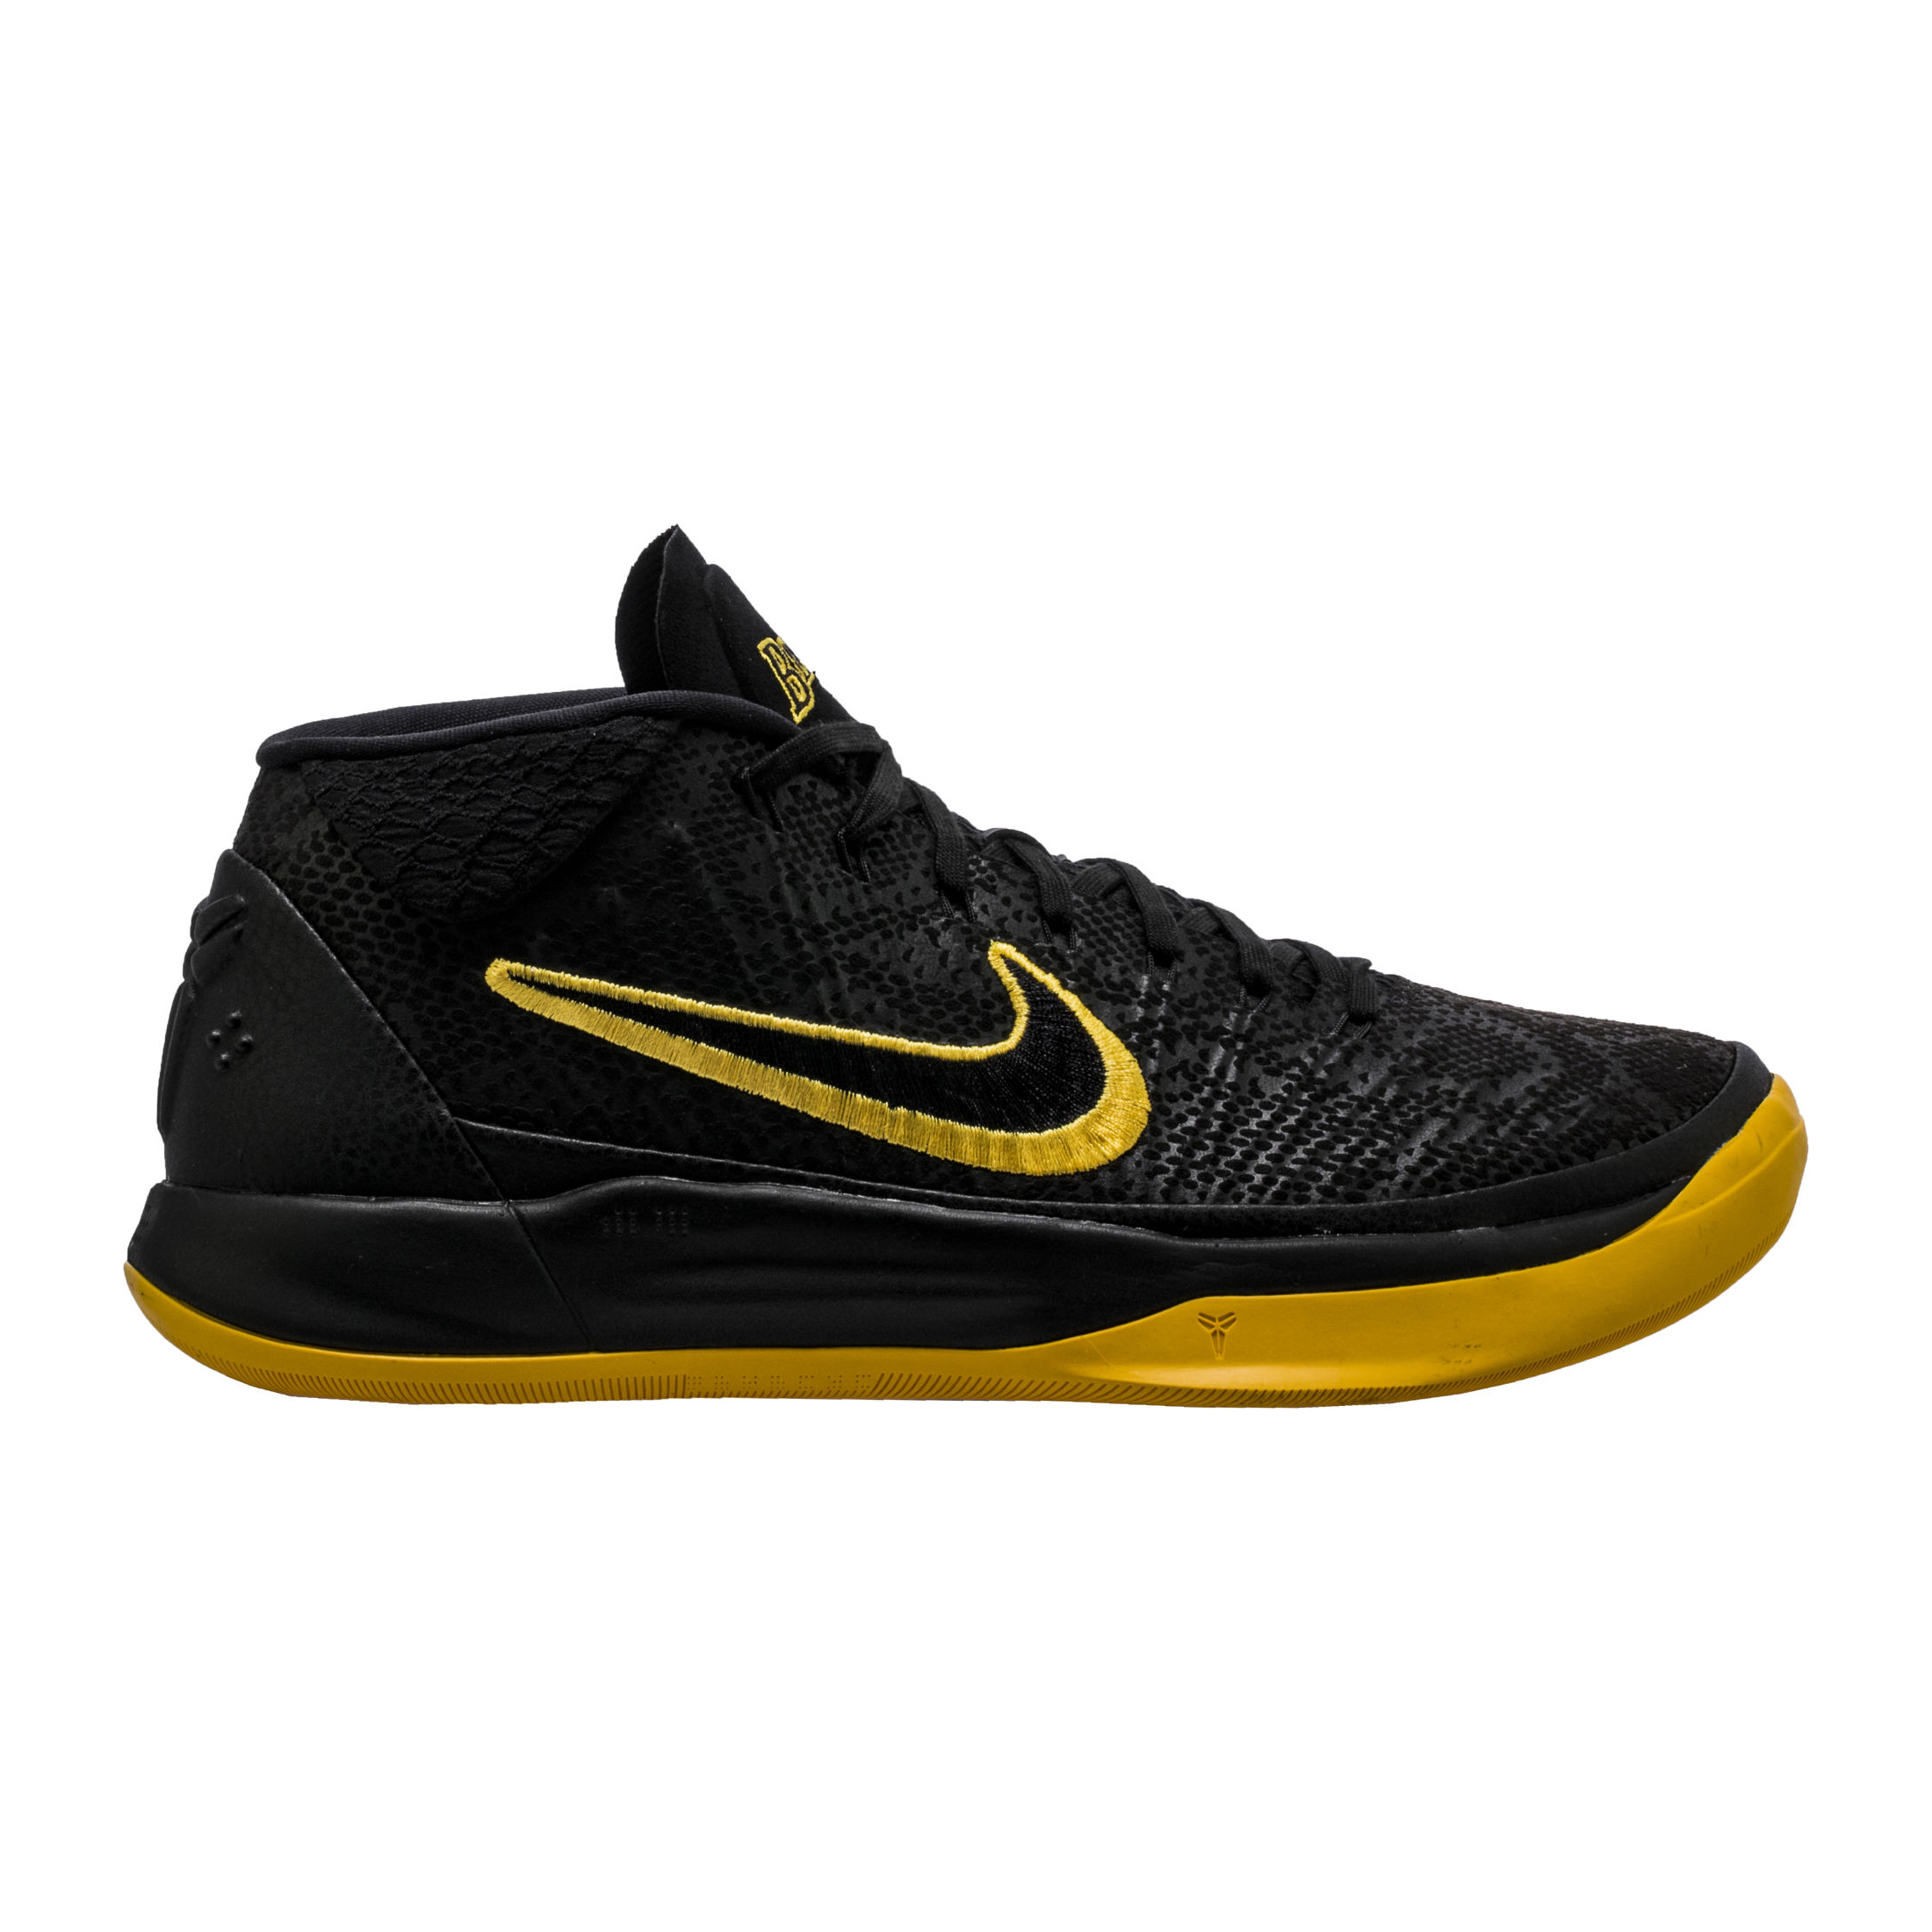 Kobe Ad Black Mamba Shoes